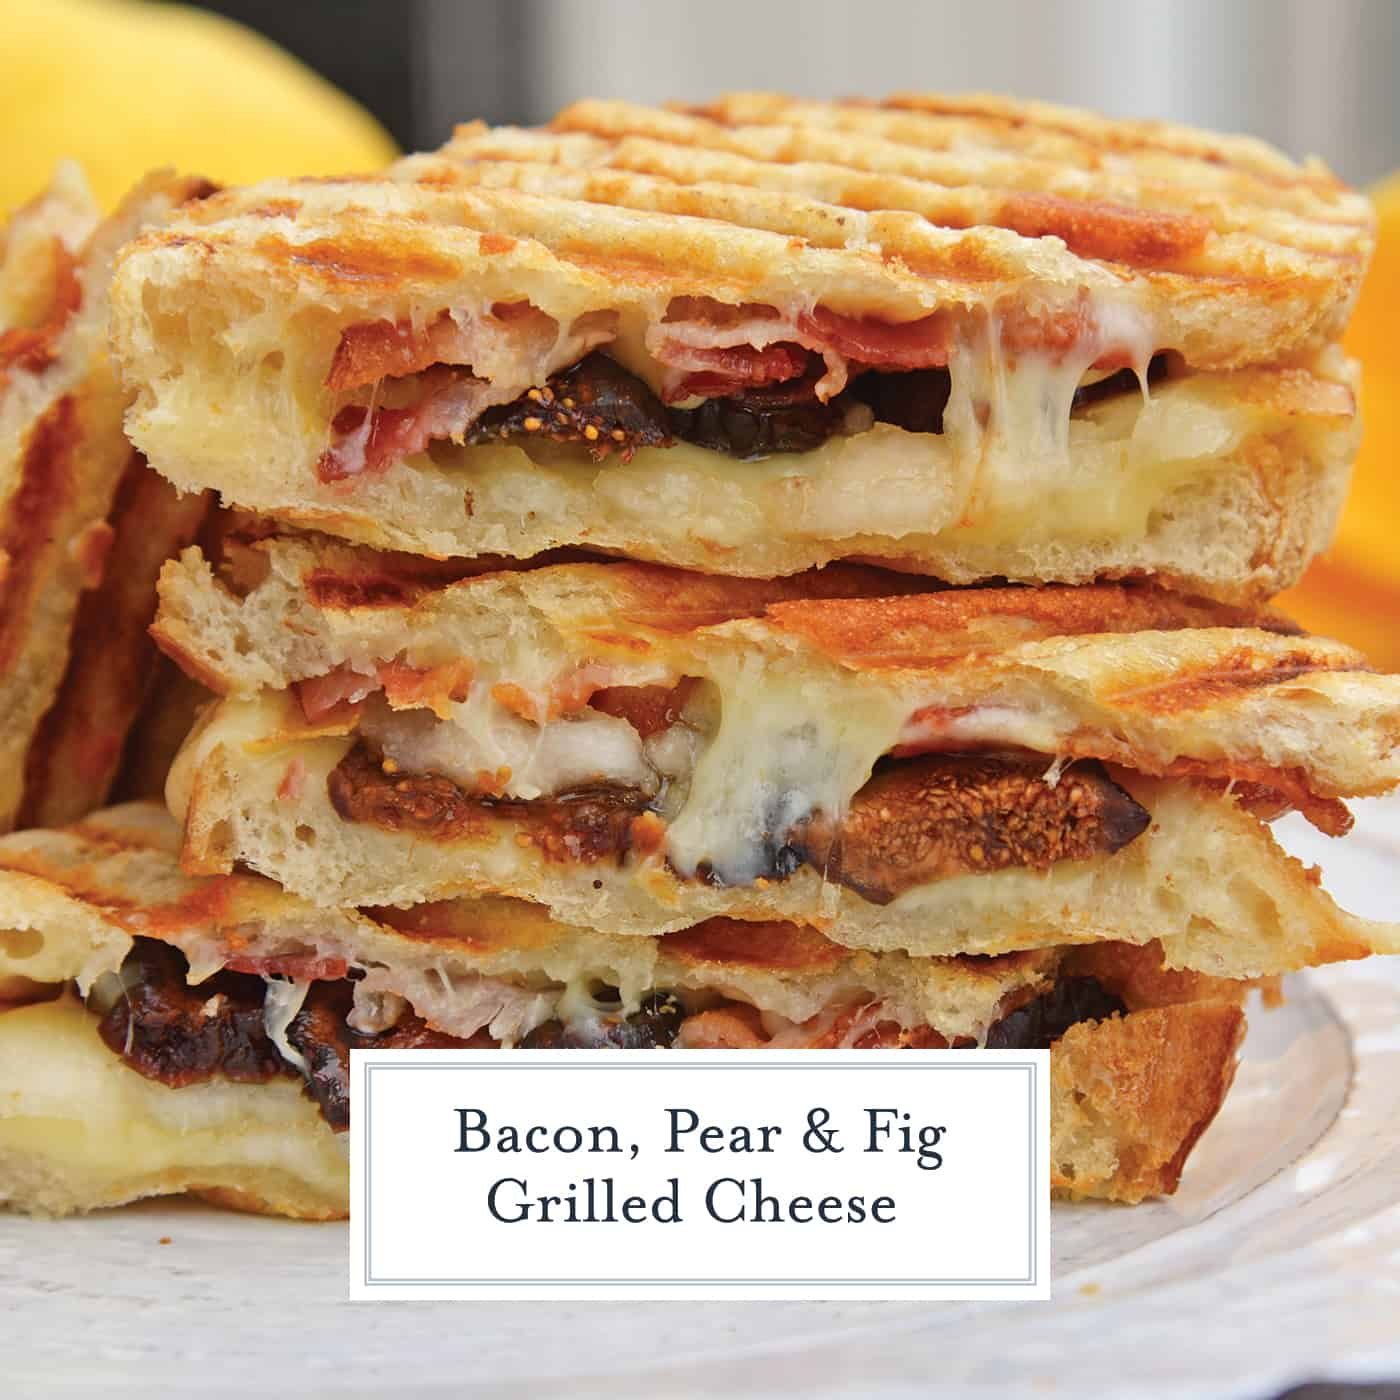 This Bacon, Pear and Fig Grilled Cheese combines sweet, savory and gooey. The ultimate grilled cheese! #gourmetgrilledcheese www.savoryexperiments.com